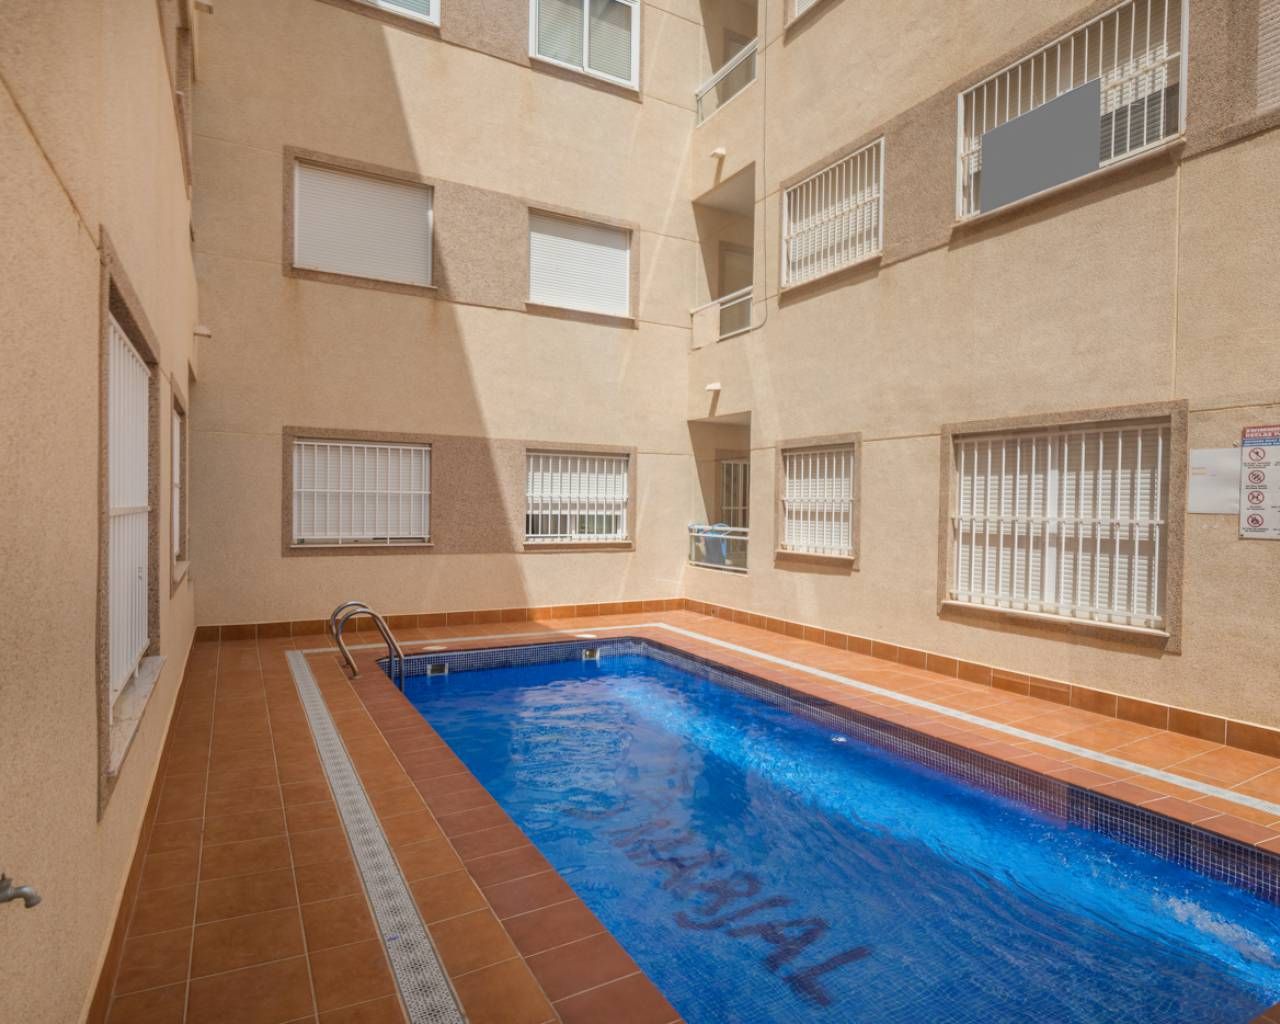 Swimming pool | Apartment with pool for sale in Formentera